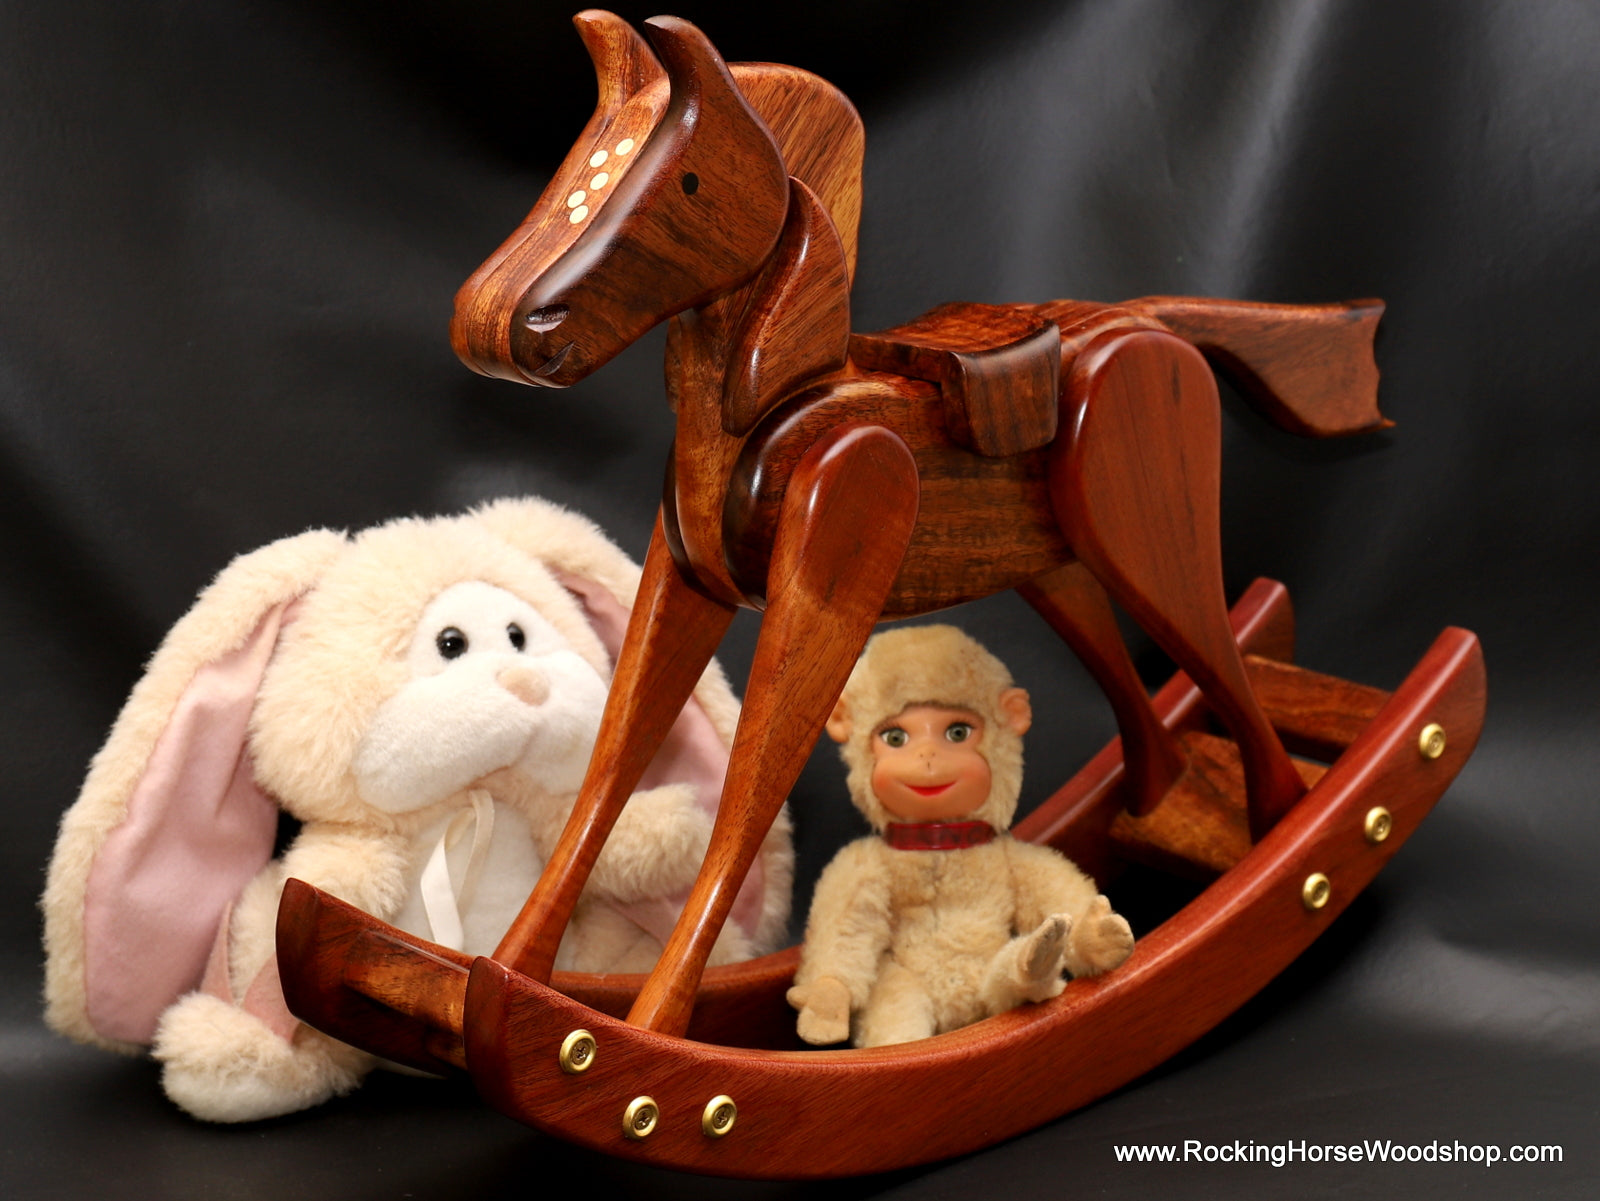 In Stock Item: Tabletop Rocking Horse